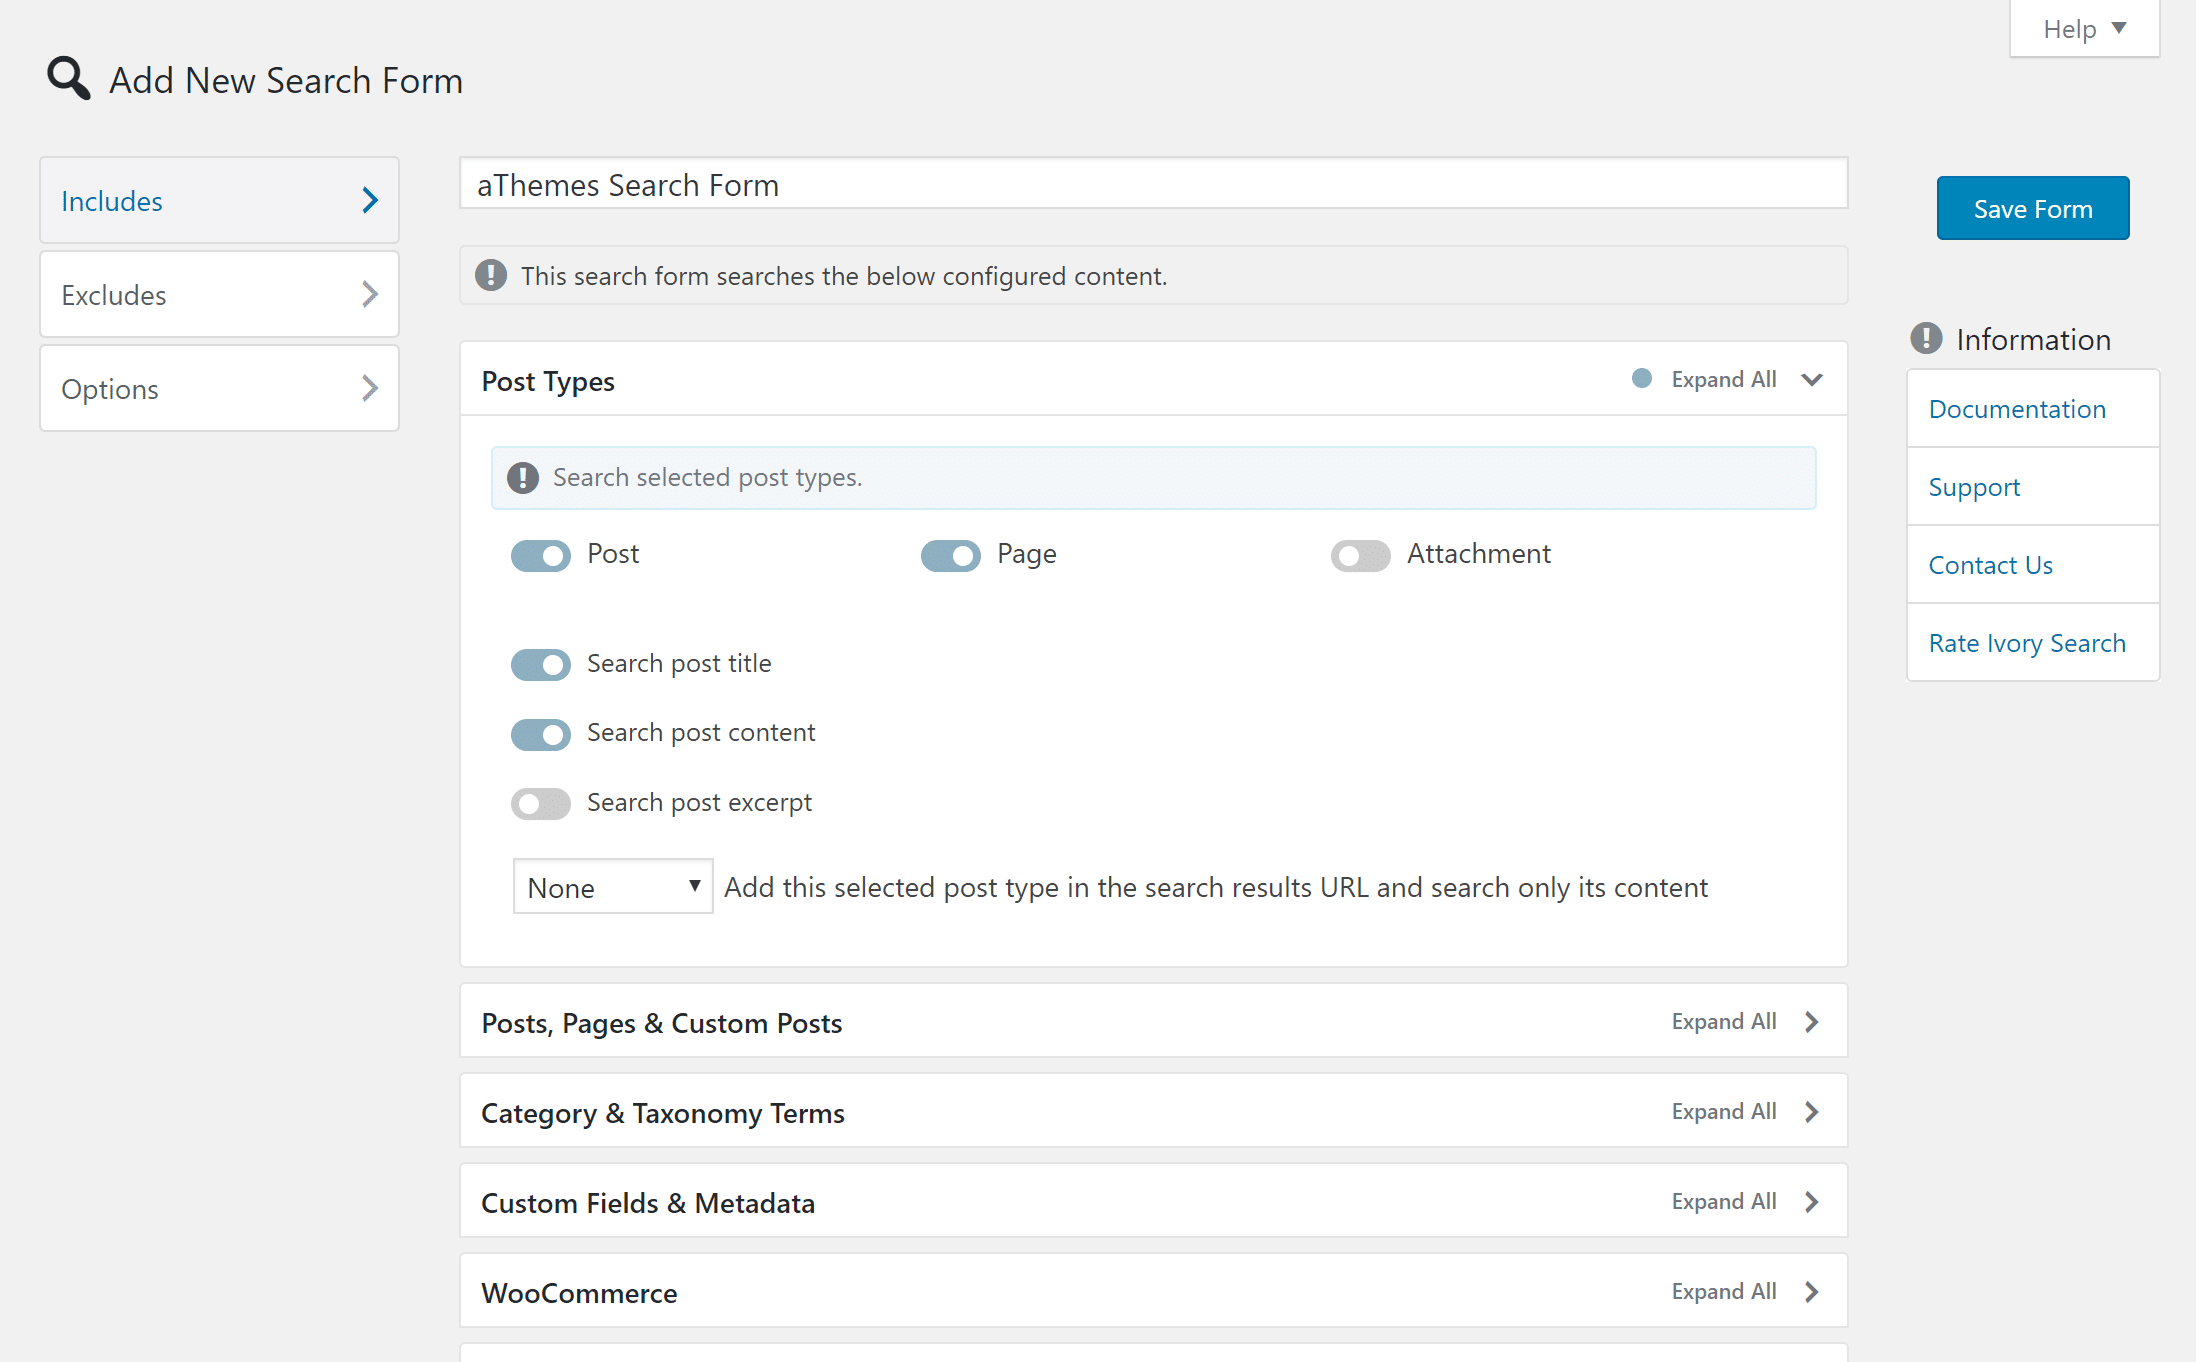 Ivory Search settings